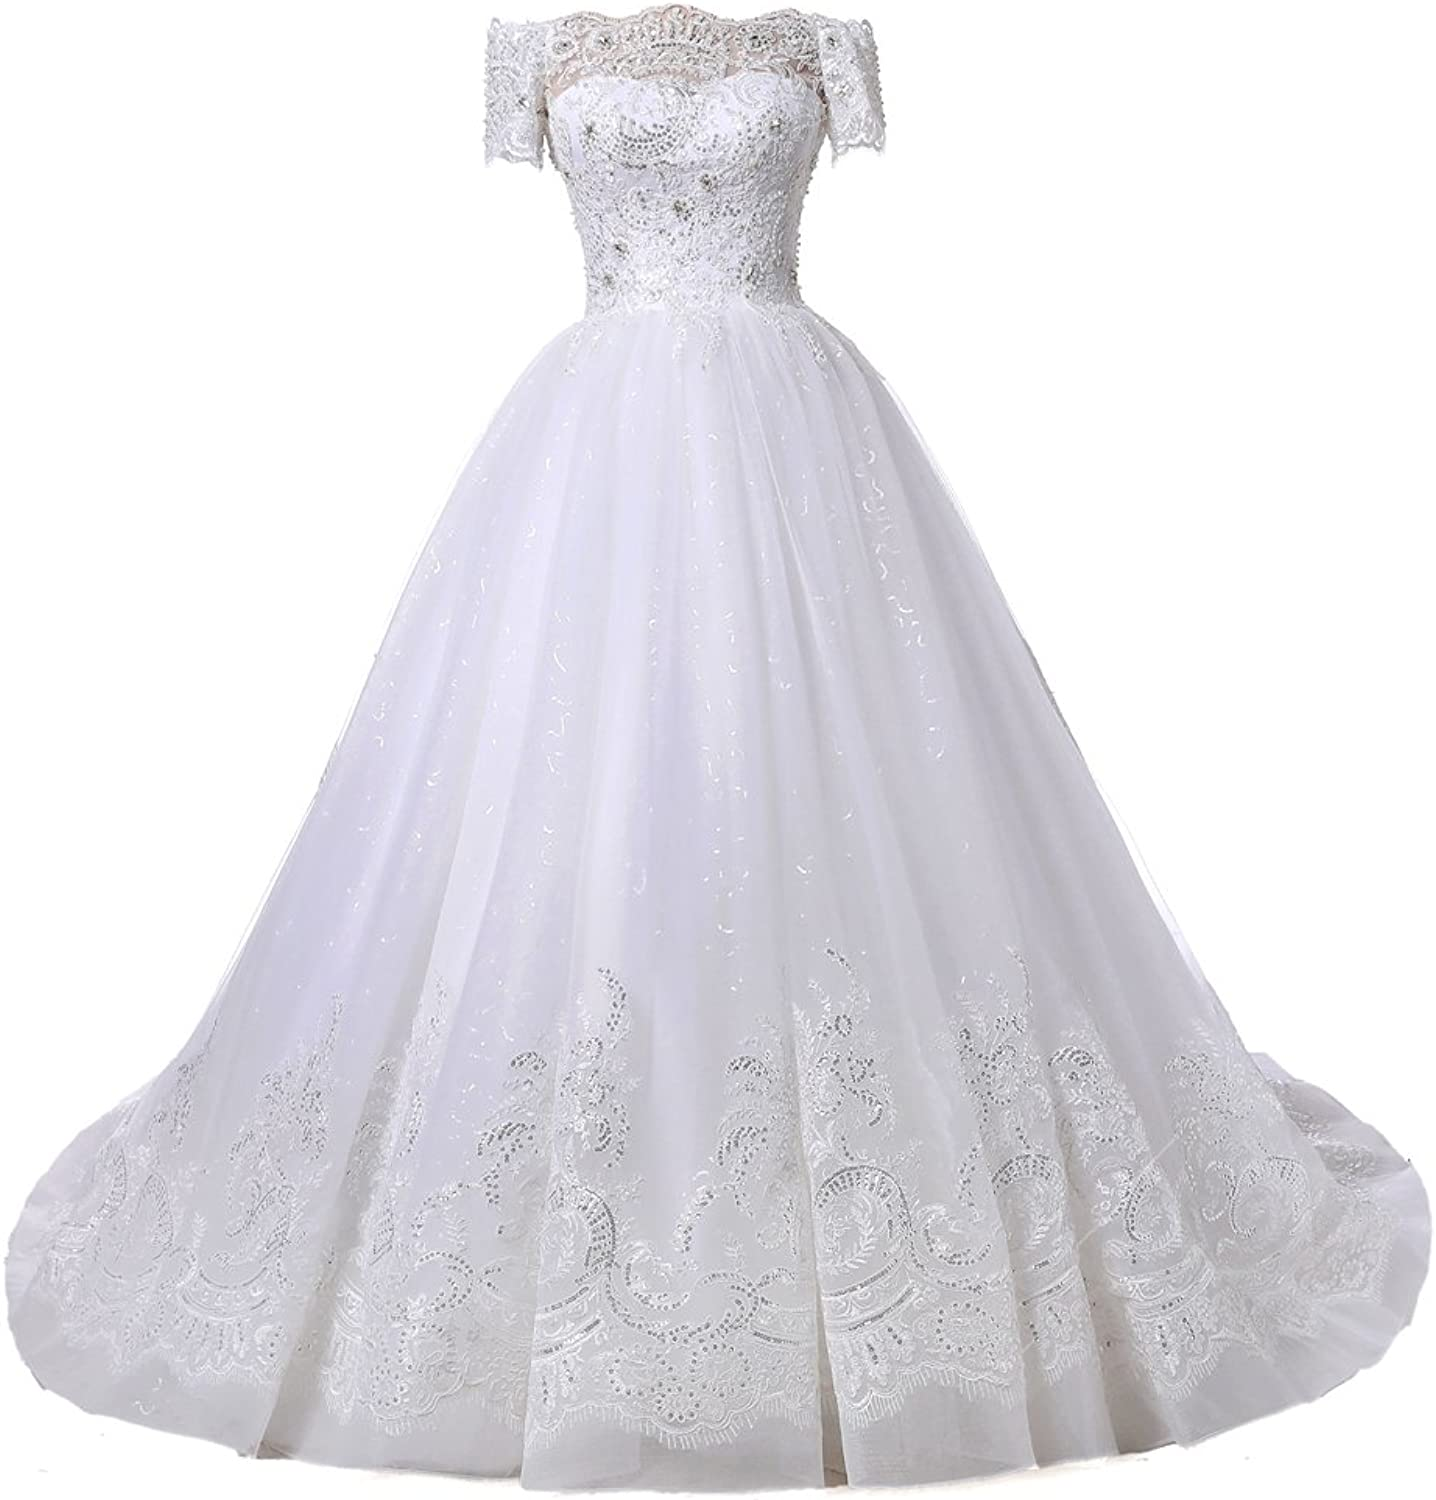 Alexzendra Women's Ball Gown Wedding Dresses For Bride Off The Shoulder Short Sleeves Bride Gowns Plus Size